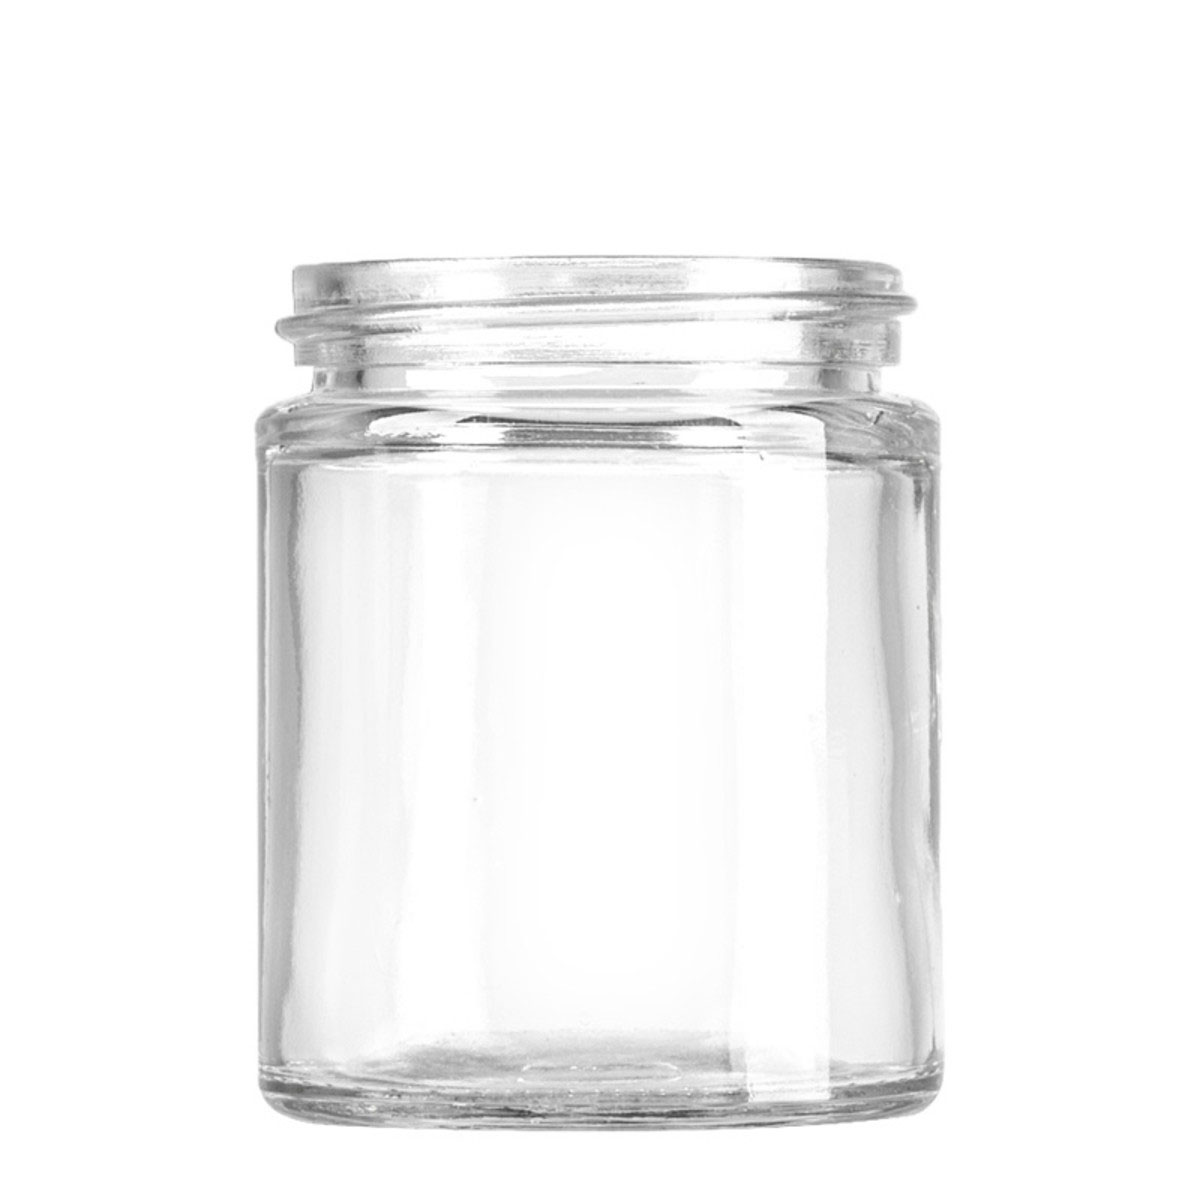 2oz Standard Glass Jar (160 Qty.)